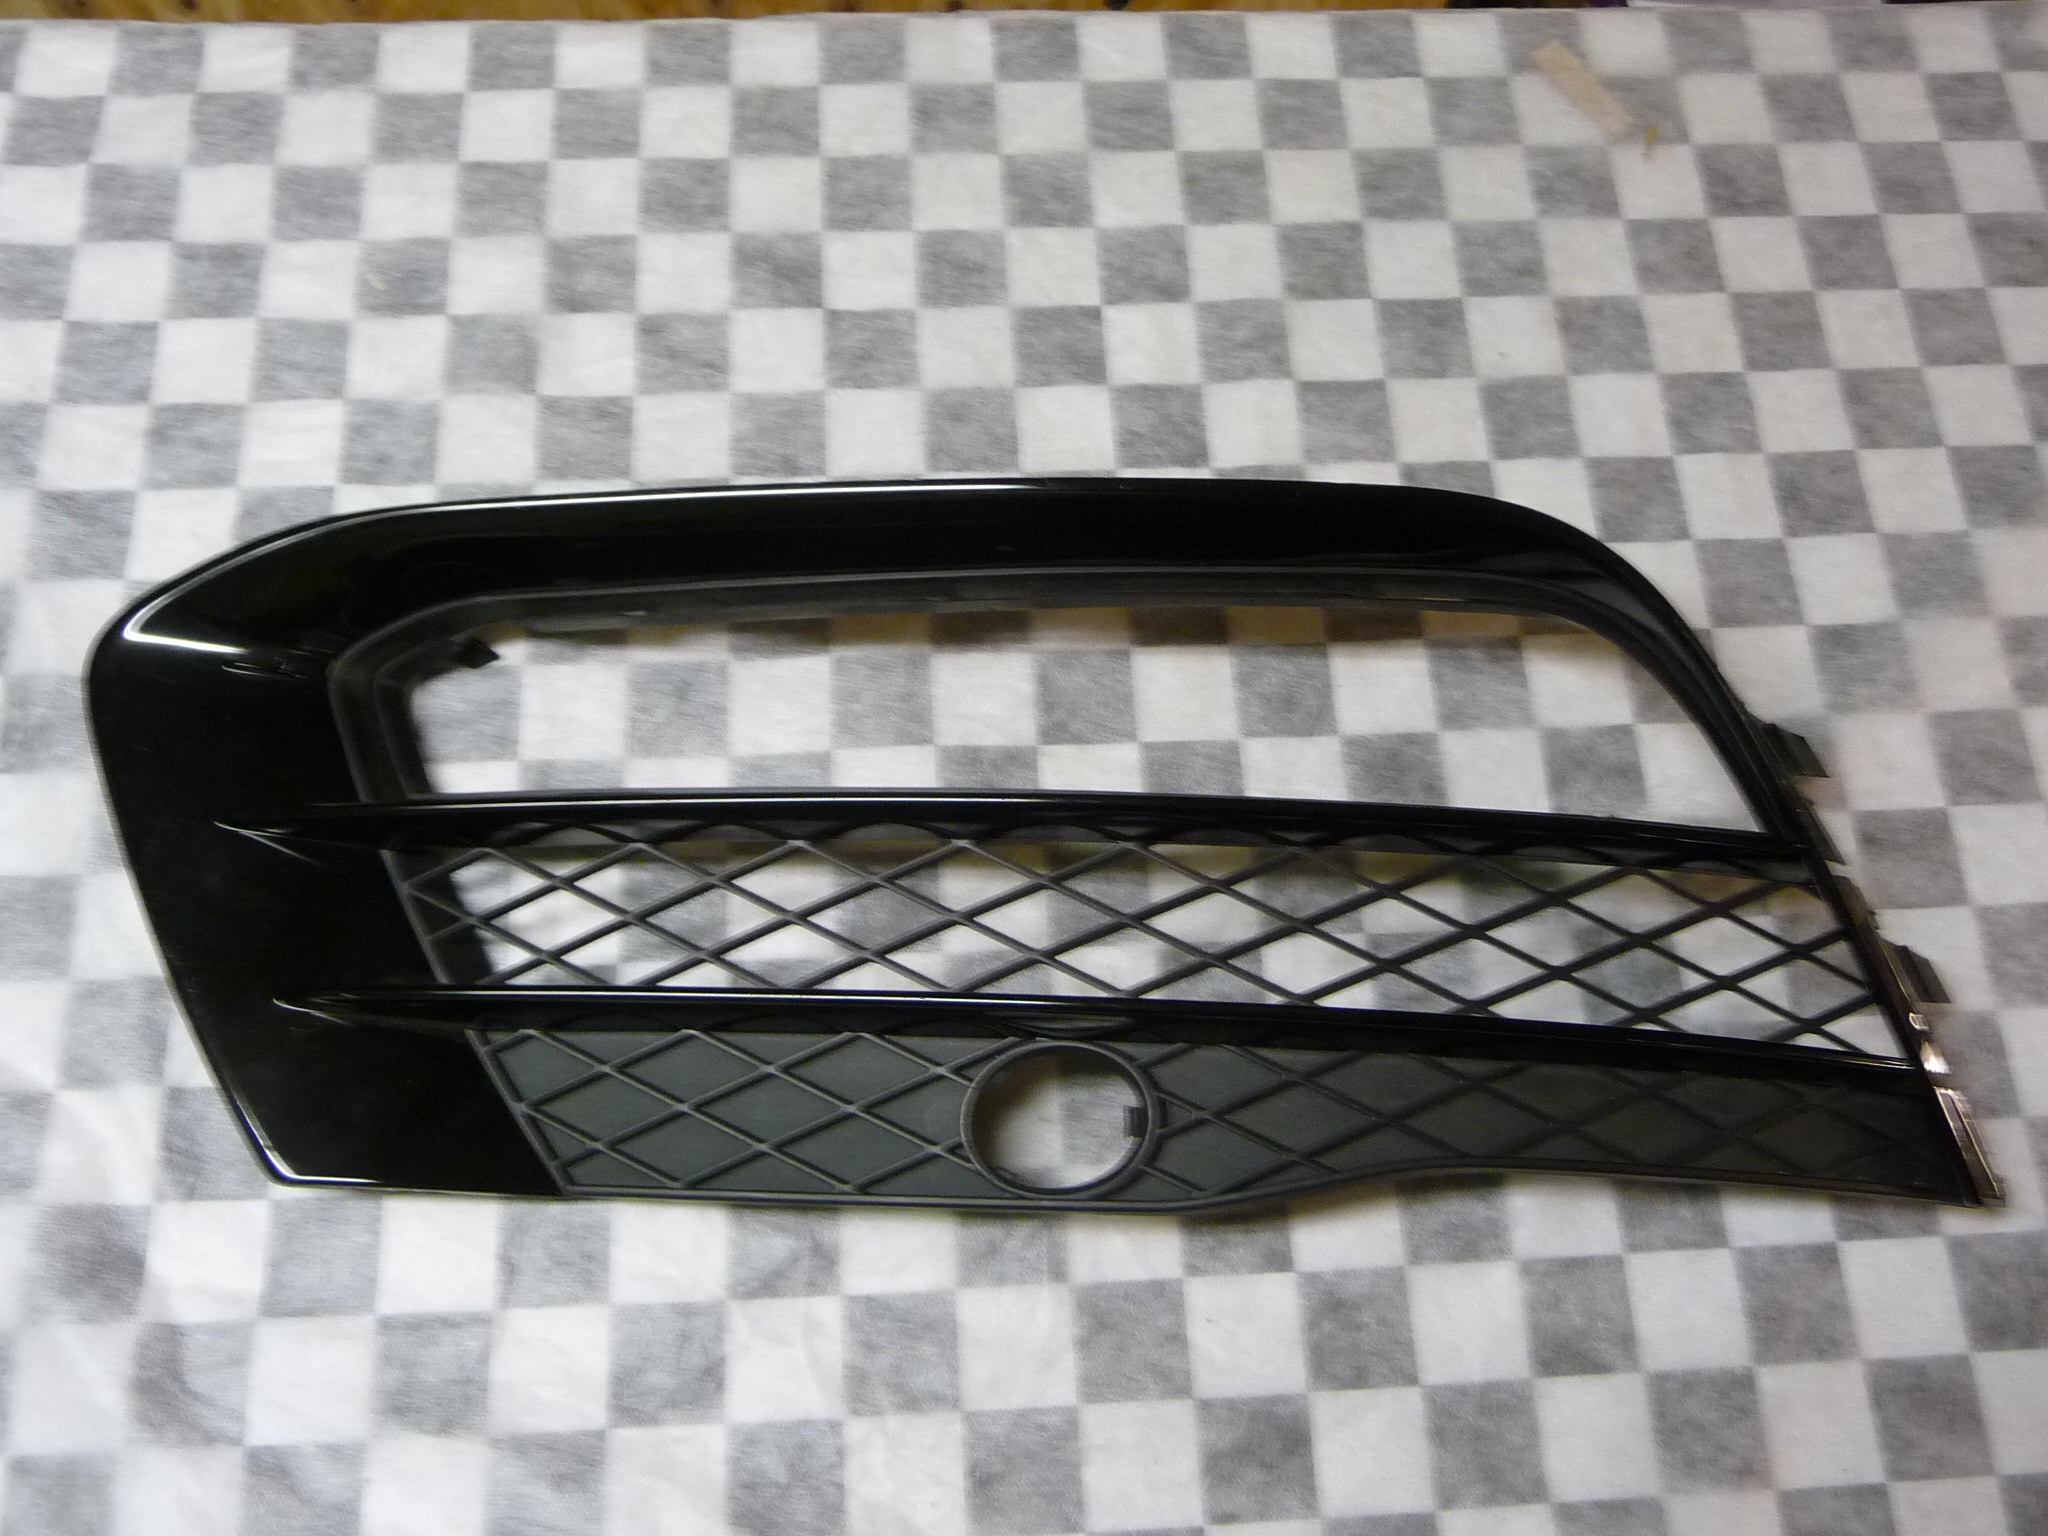 2010-2012 Audi R8 Front Bumper Right Grill Grille 420807684A OEM OE Cond. B